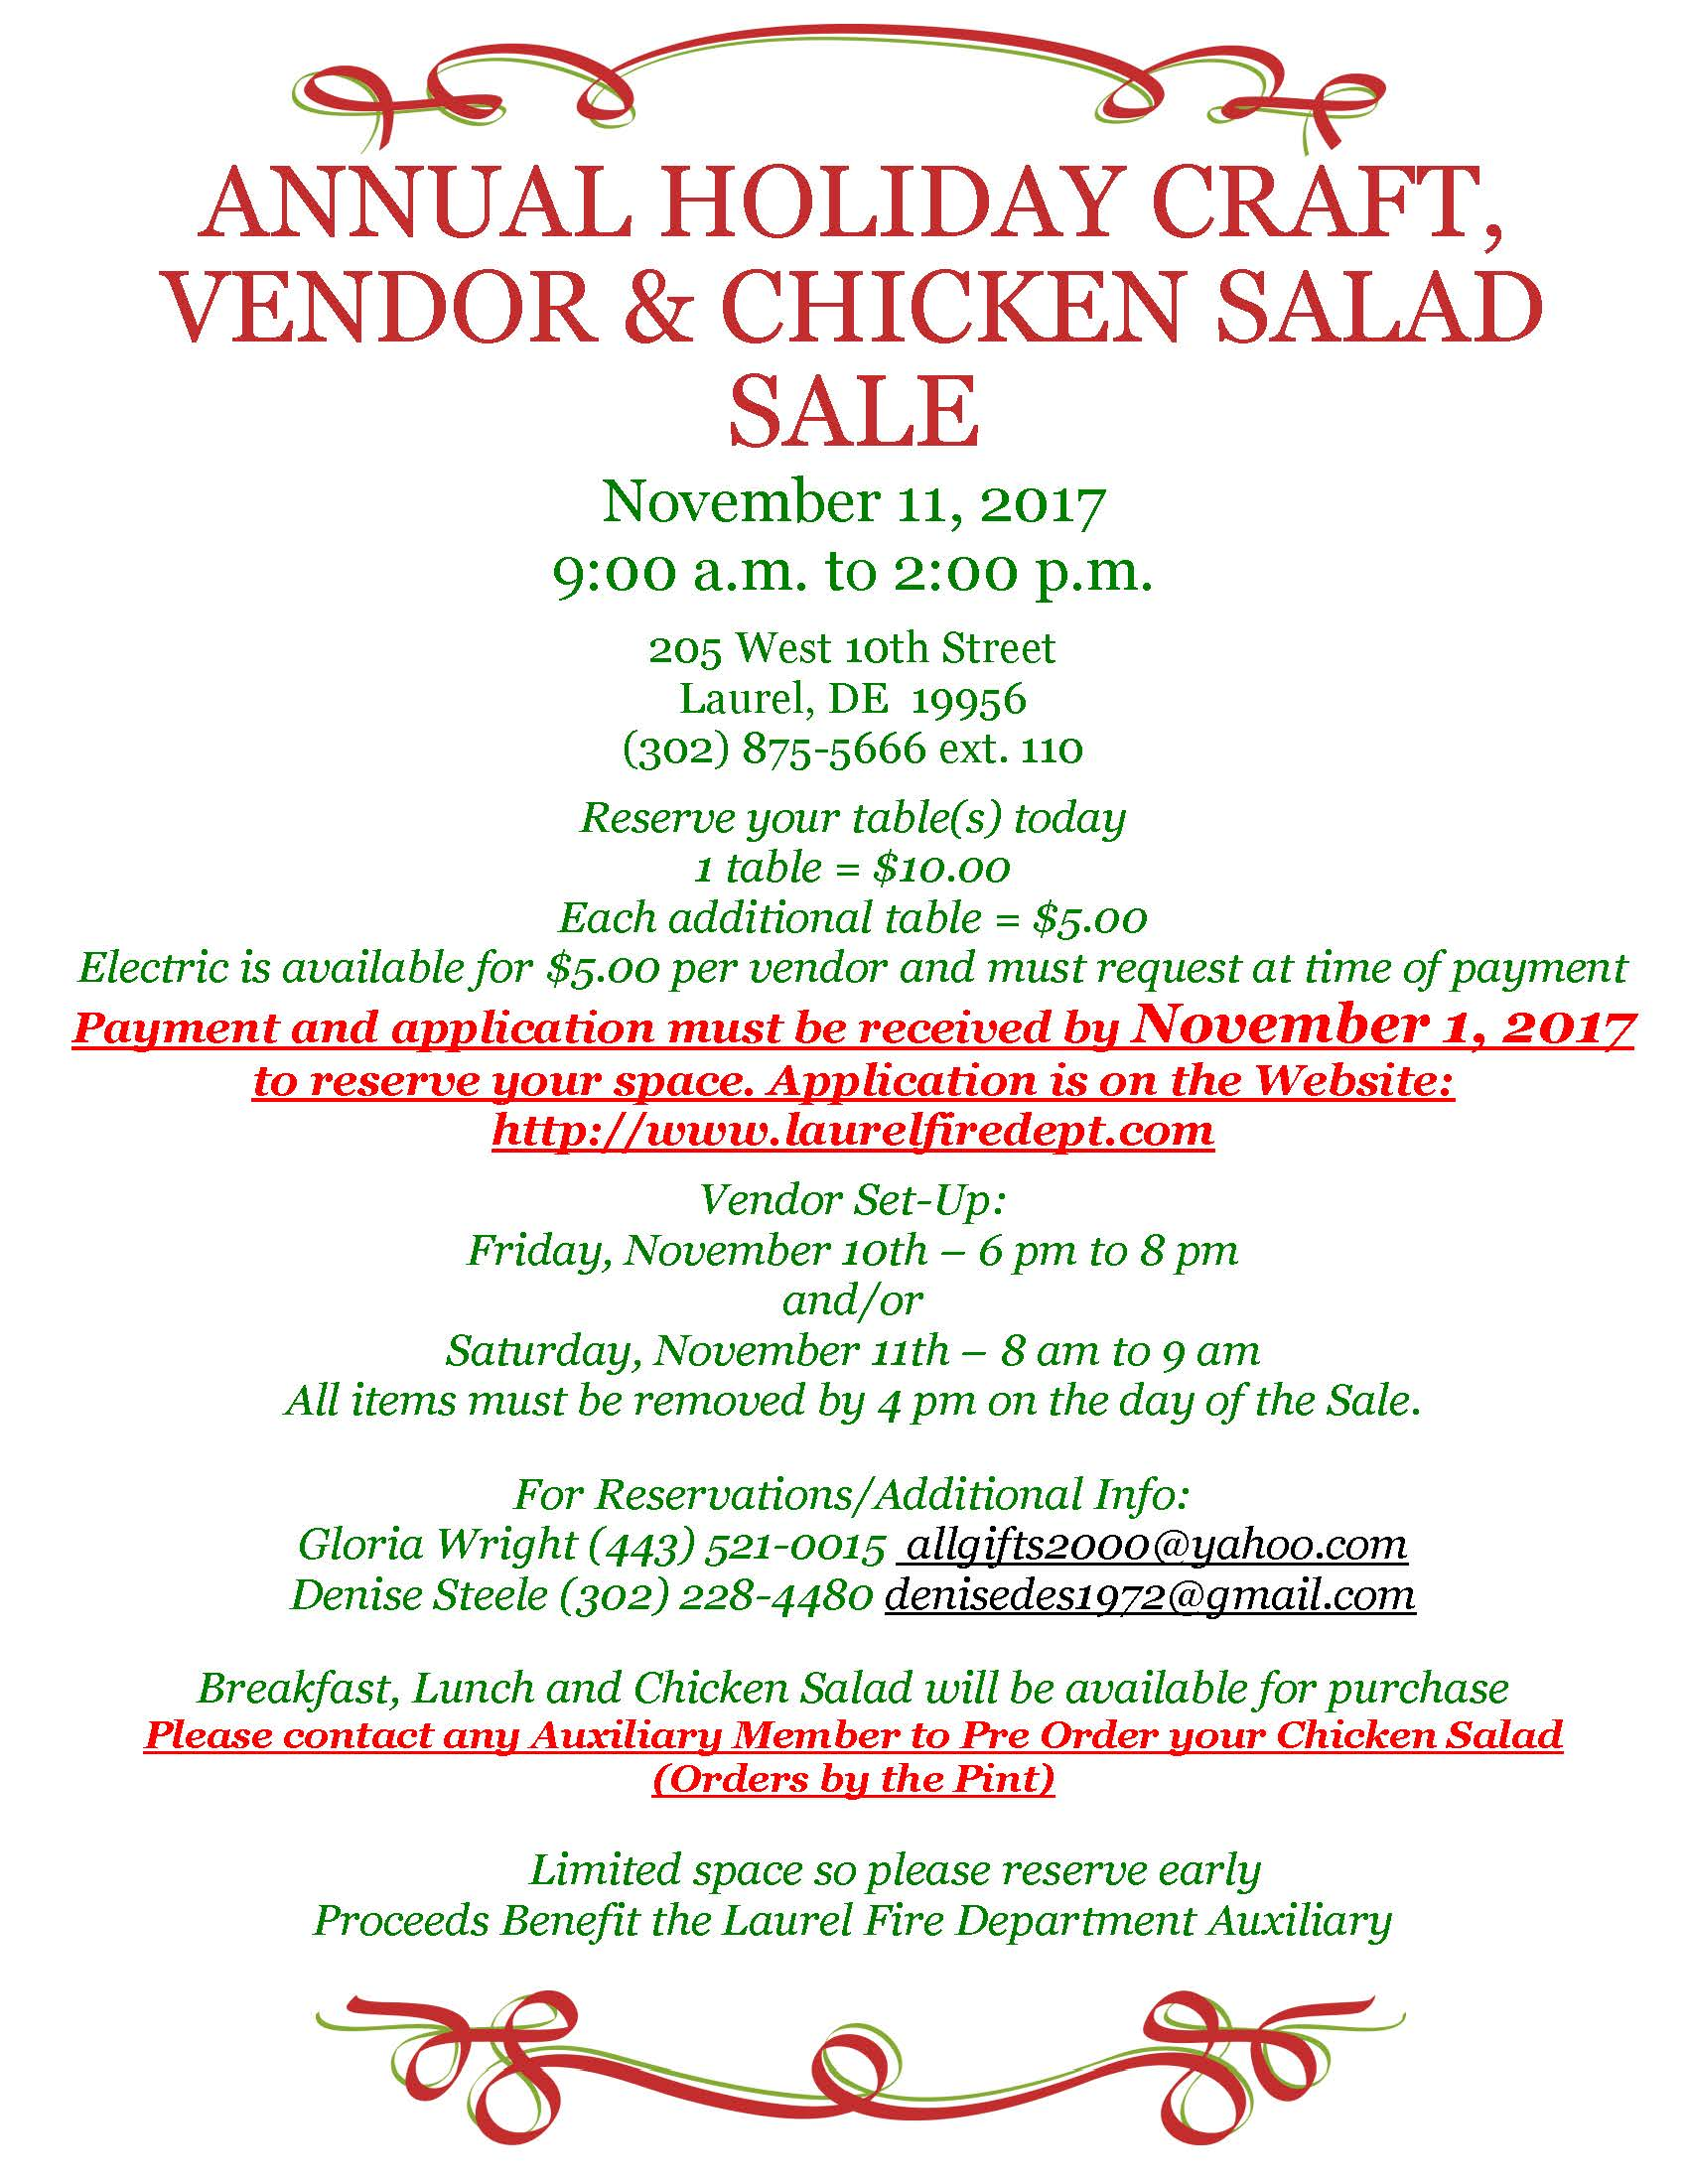 Laurel Fire Department Auxiliary Annual Holiday Craft Vendor Chicken Salad Sale Sat Nov 11 2017 From 900 To 200 205 West 10th Street